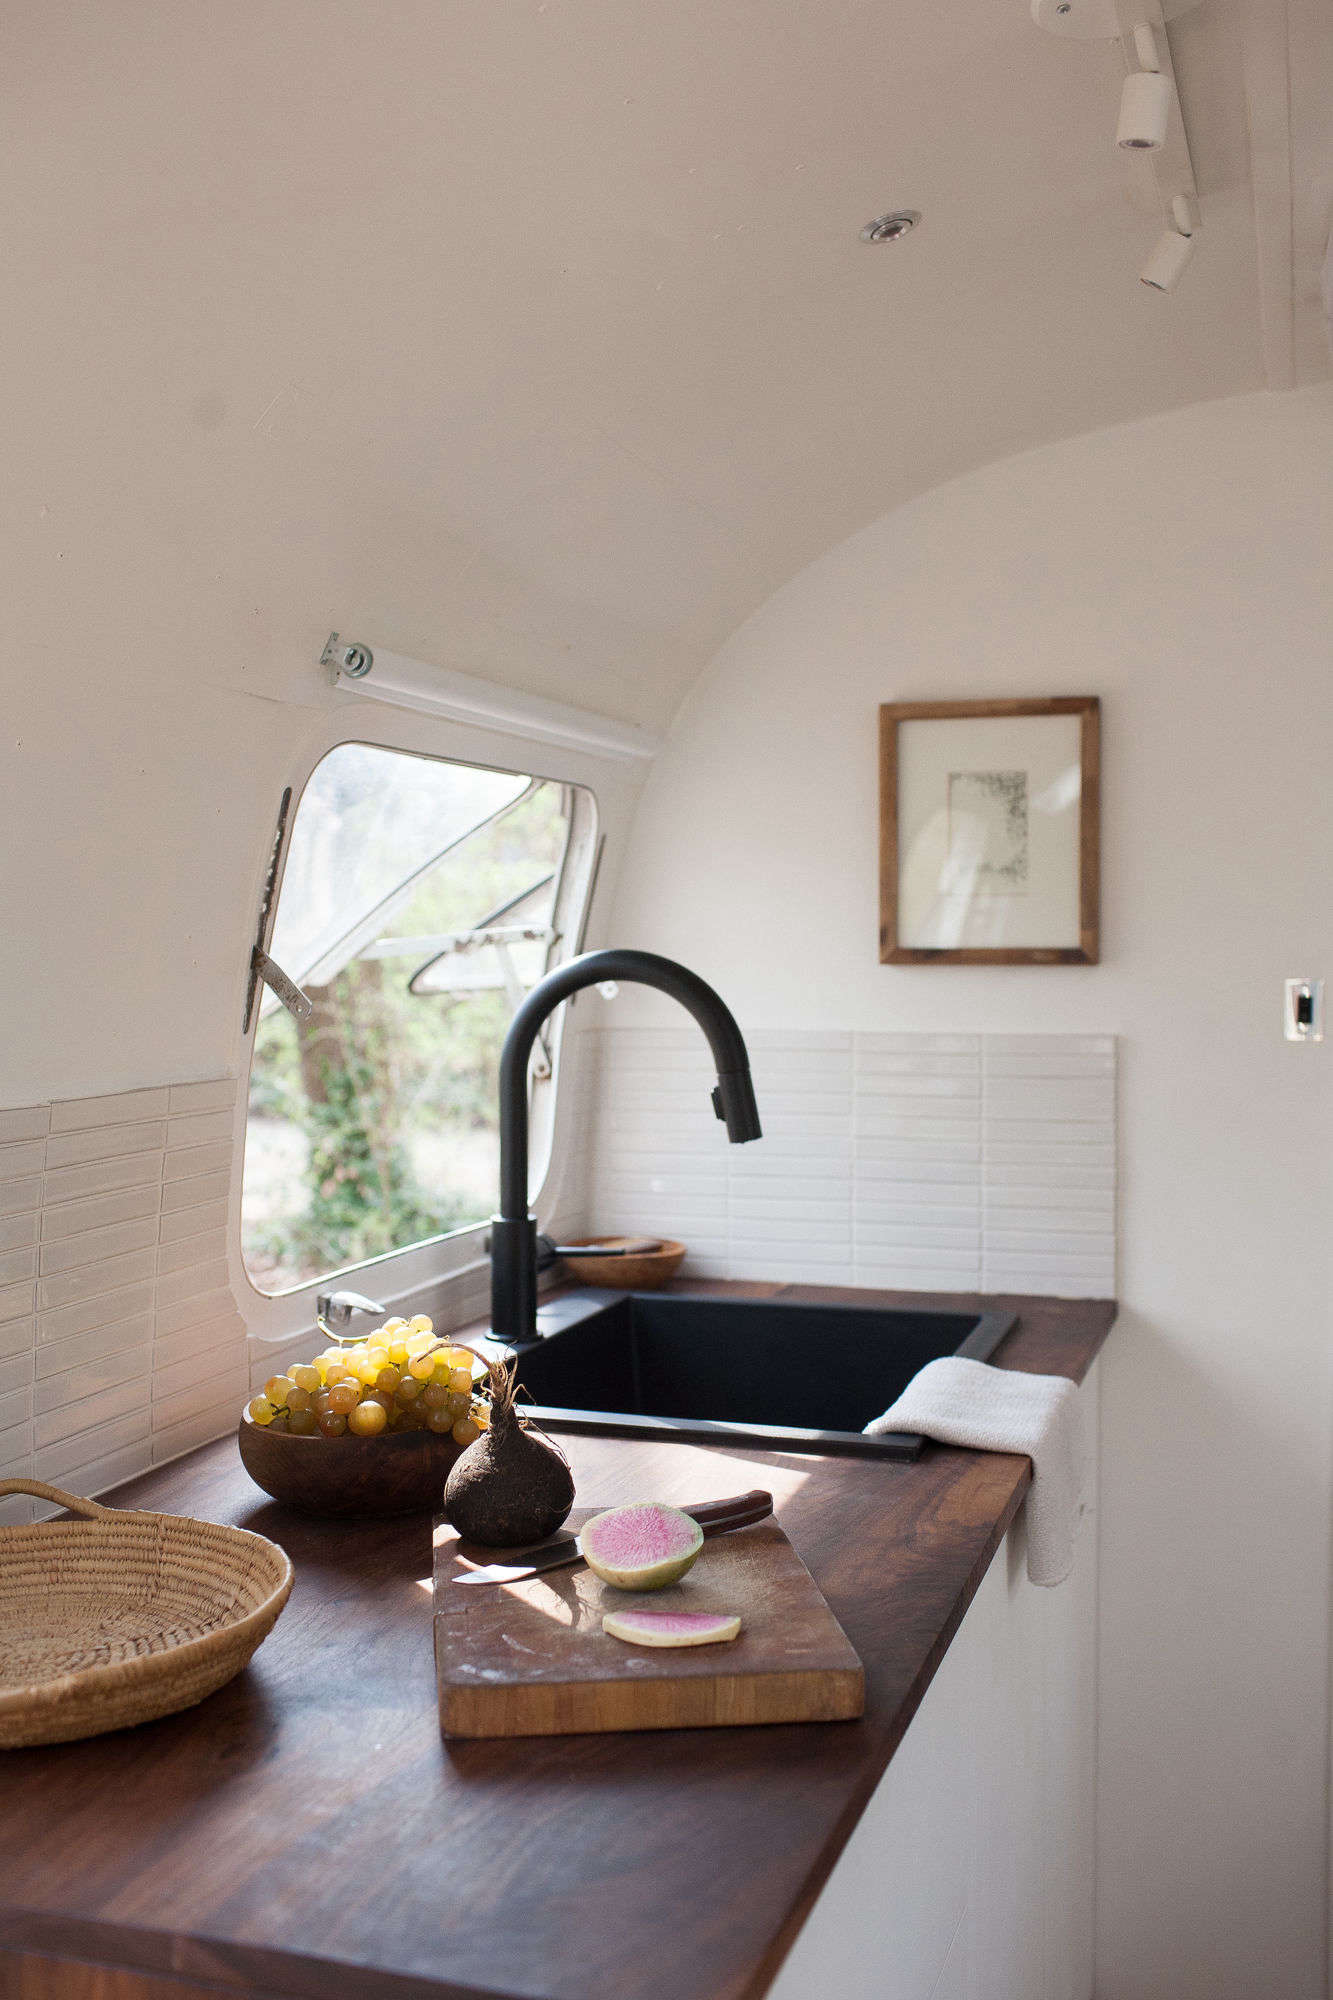 Kate and Ellen selected a Single Bowl Granite Composite Sink in black by  Alfi ($550